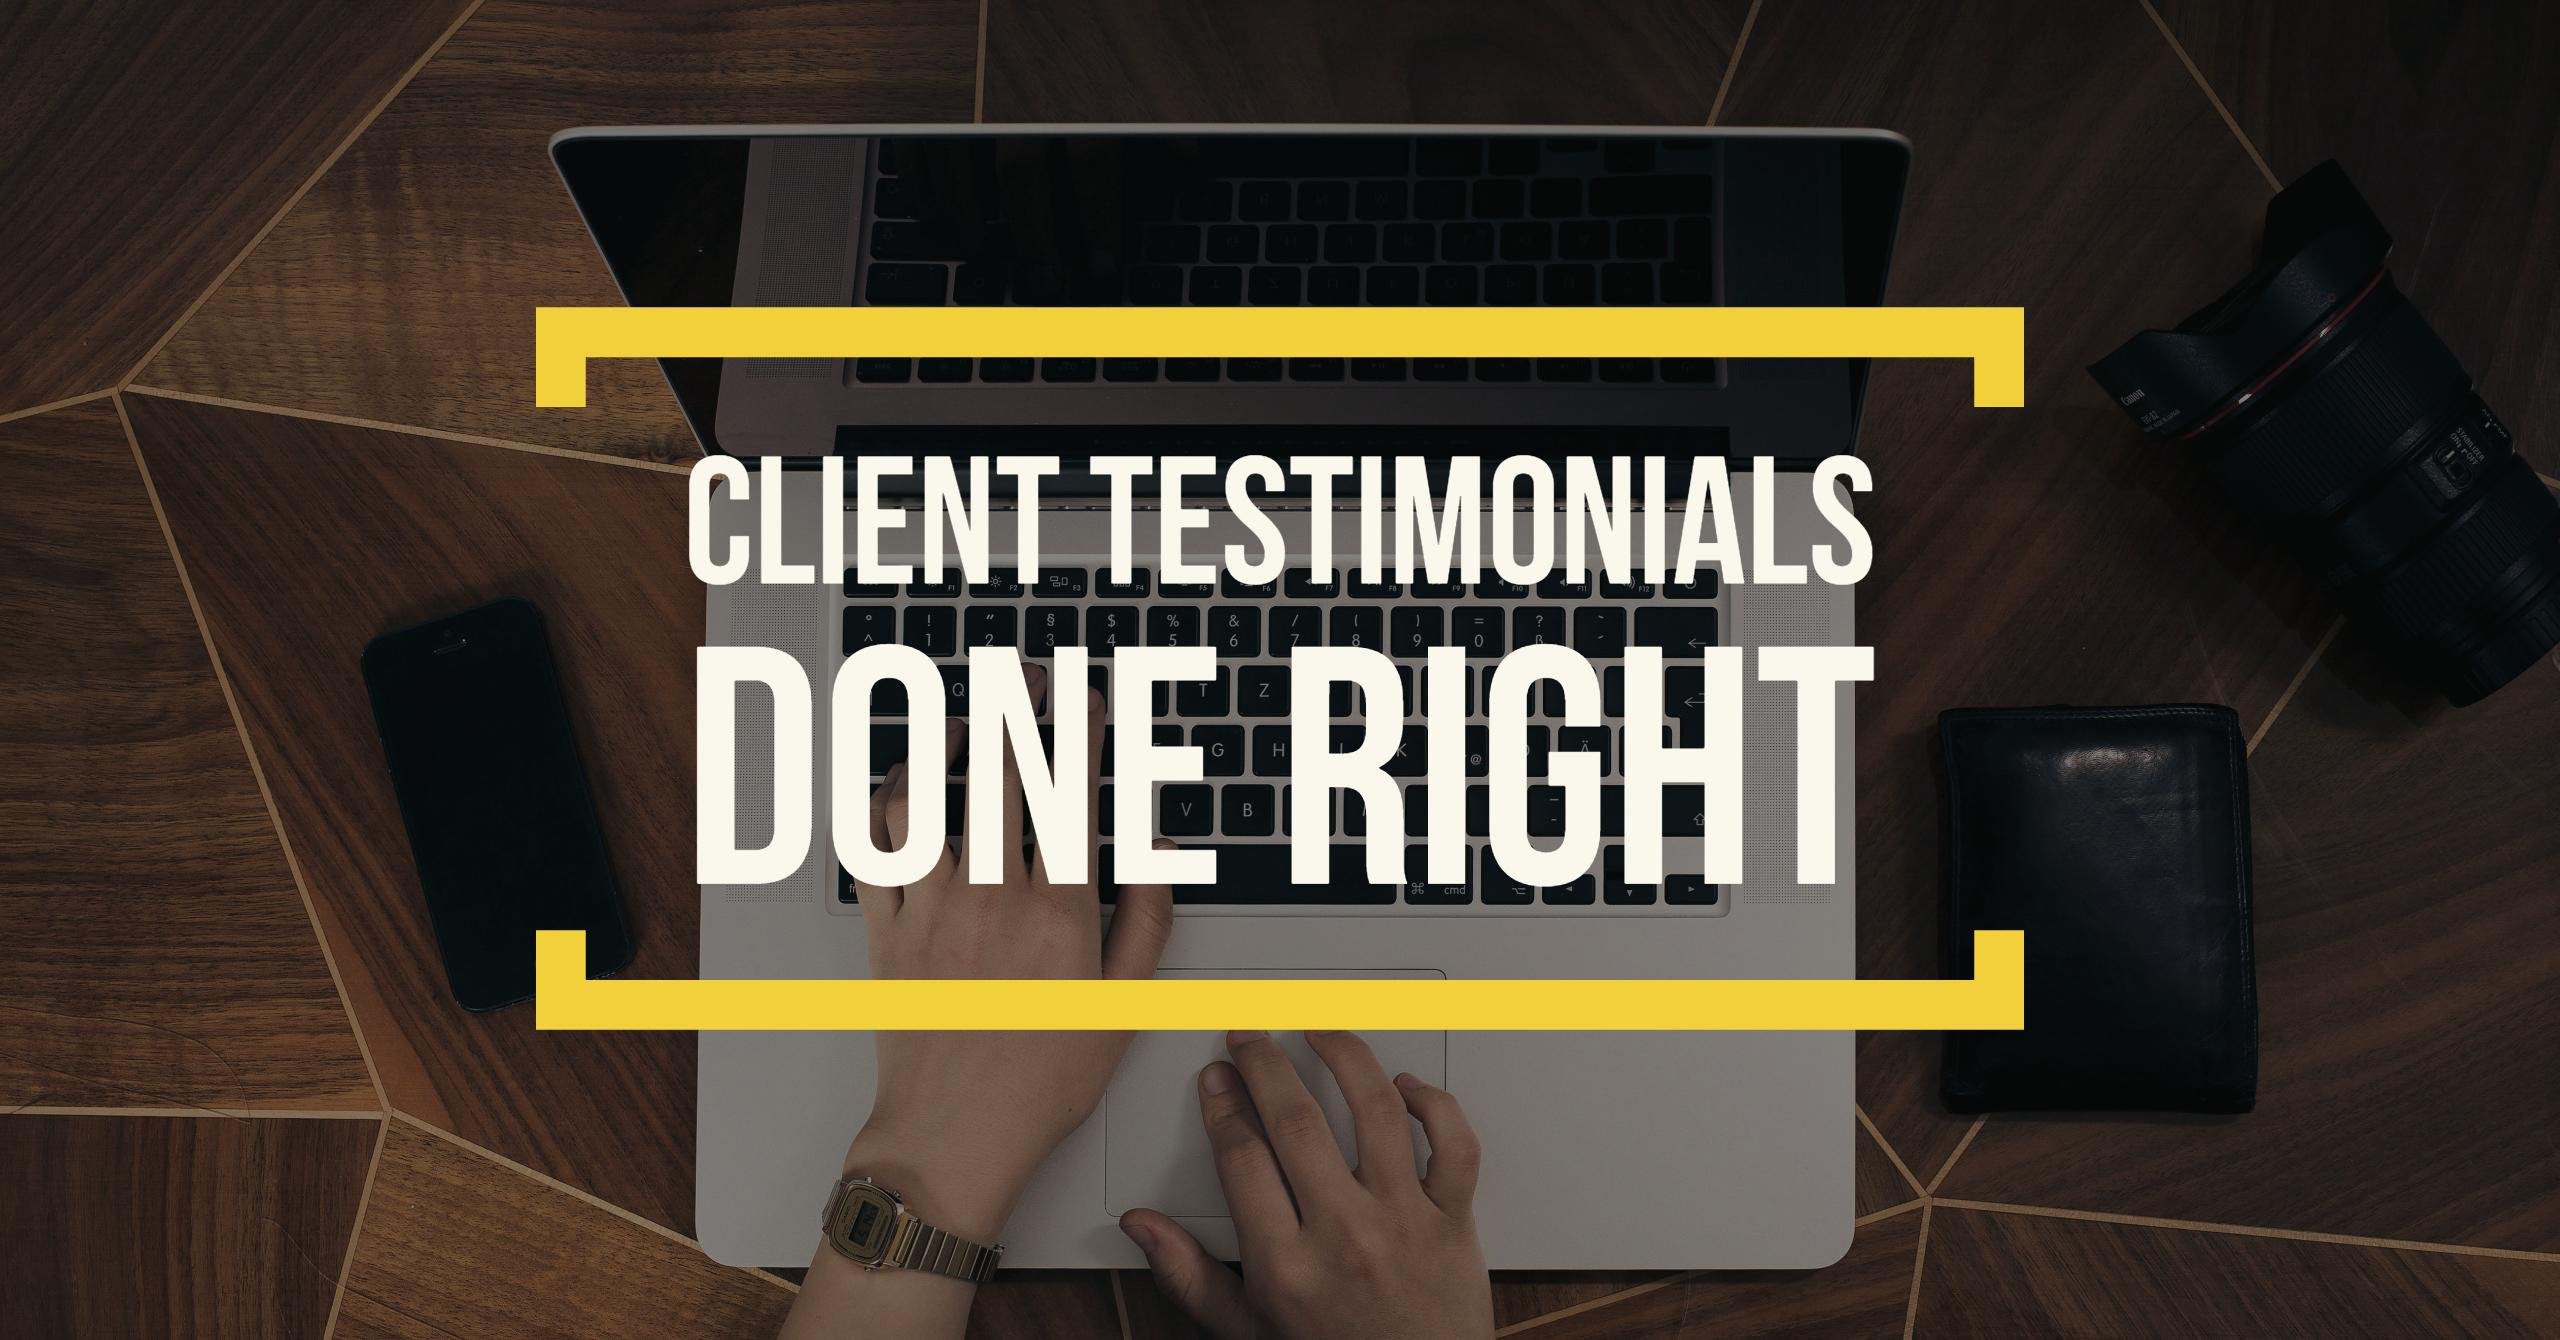 Client Testimonials Done Right